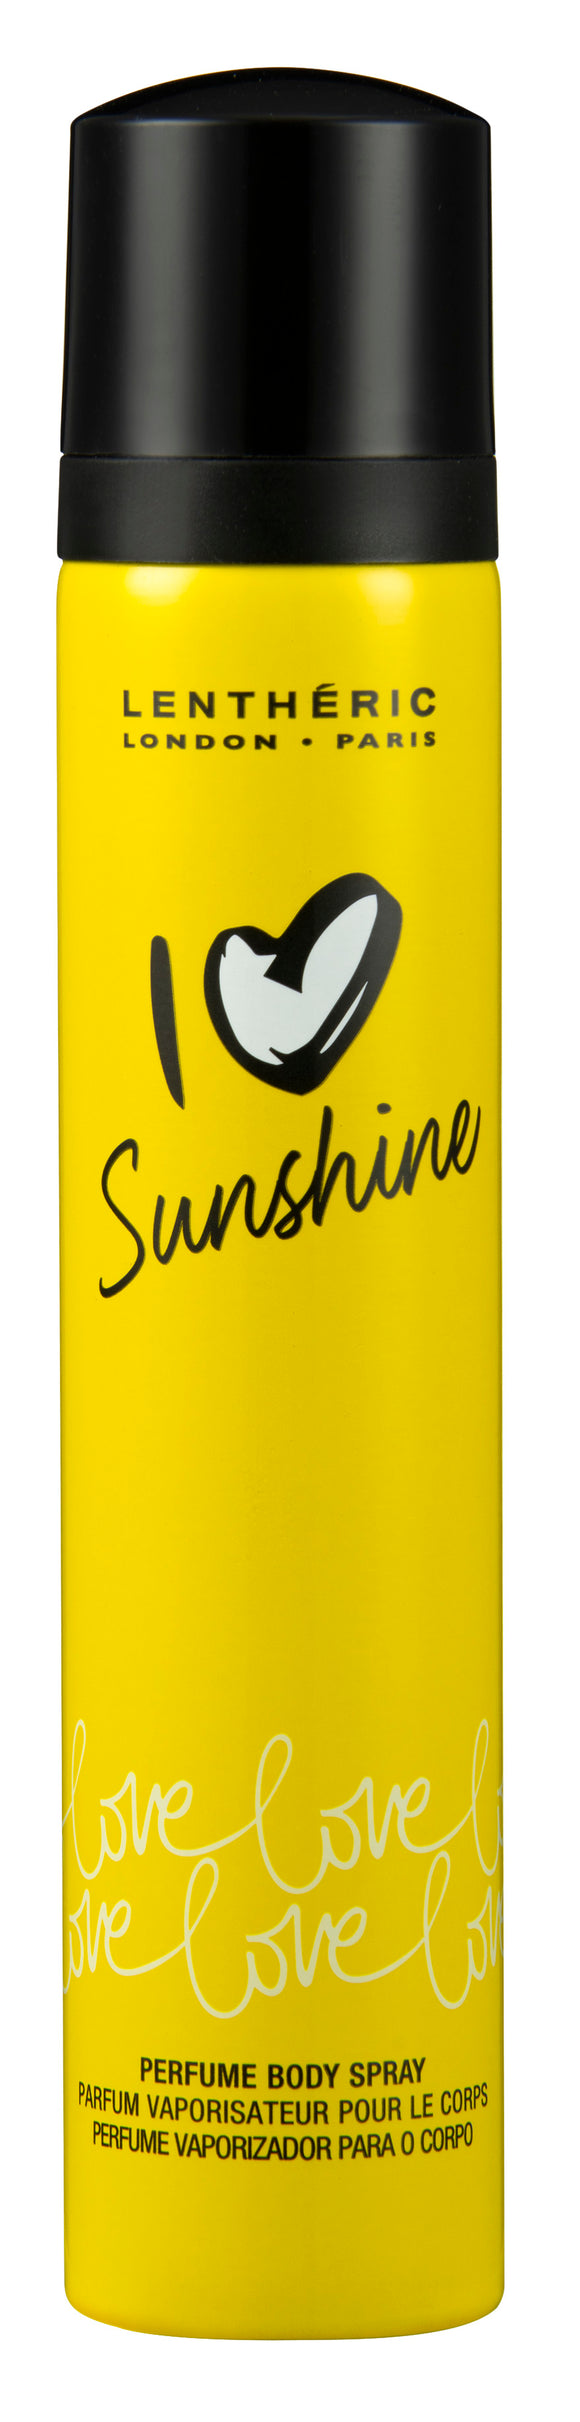 Lentheric I Love Perfume Body Spray Sunshine 90ML